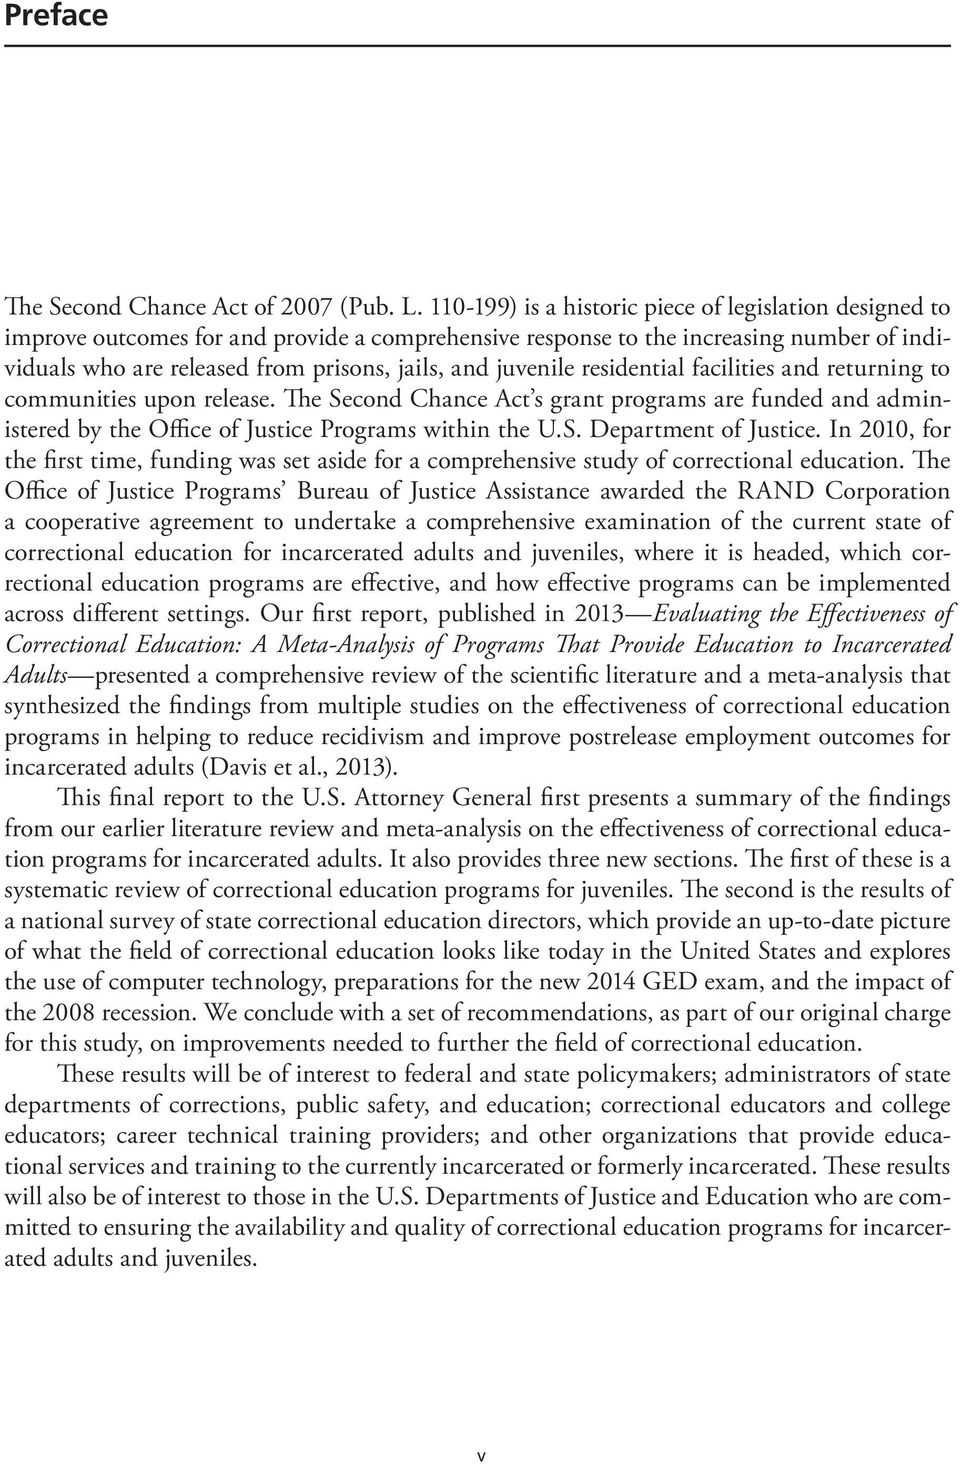 juvenile residential facilities and returning to communities upon release. The Second Chance Act s grant programs are funded and administered by the Office of Justice Programs within the U.S. Department of Justice.